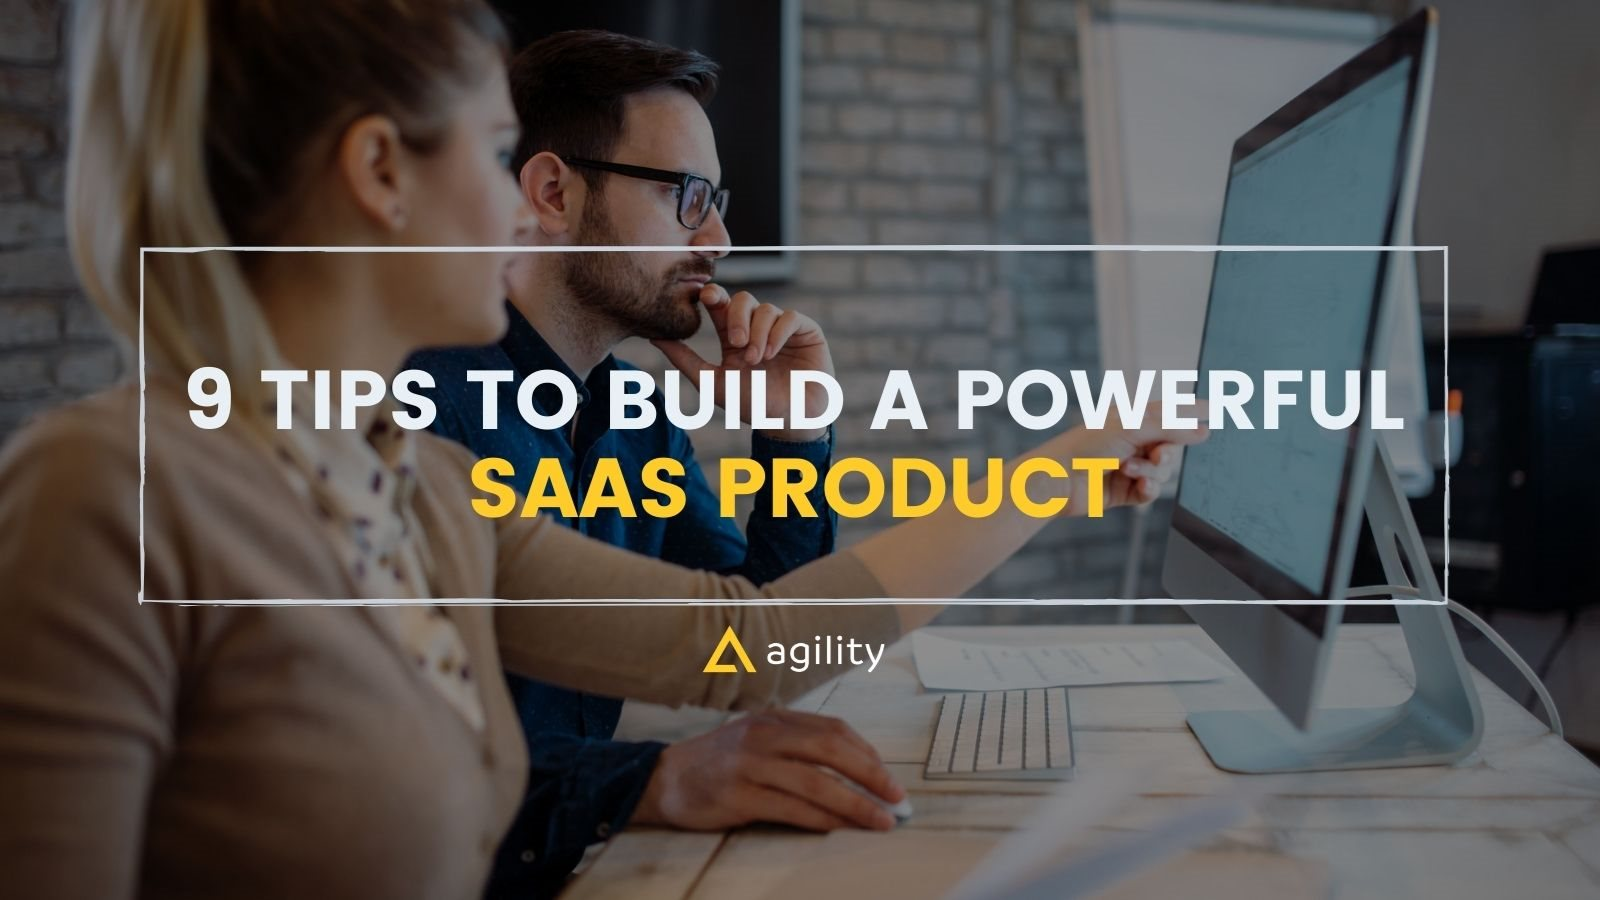 9 Tips to build a powerful SAAS product